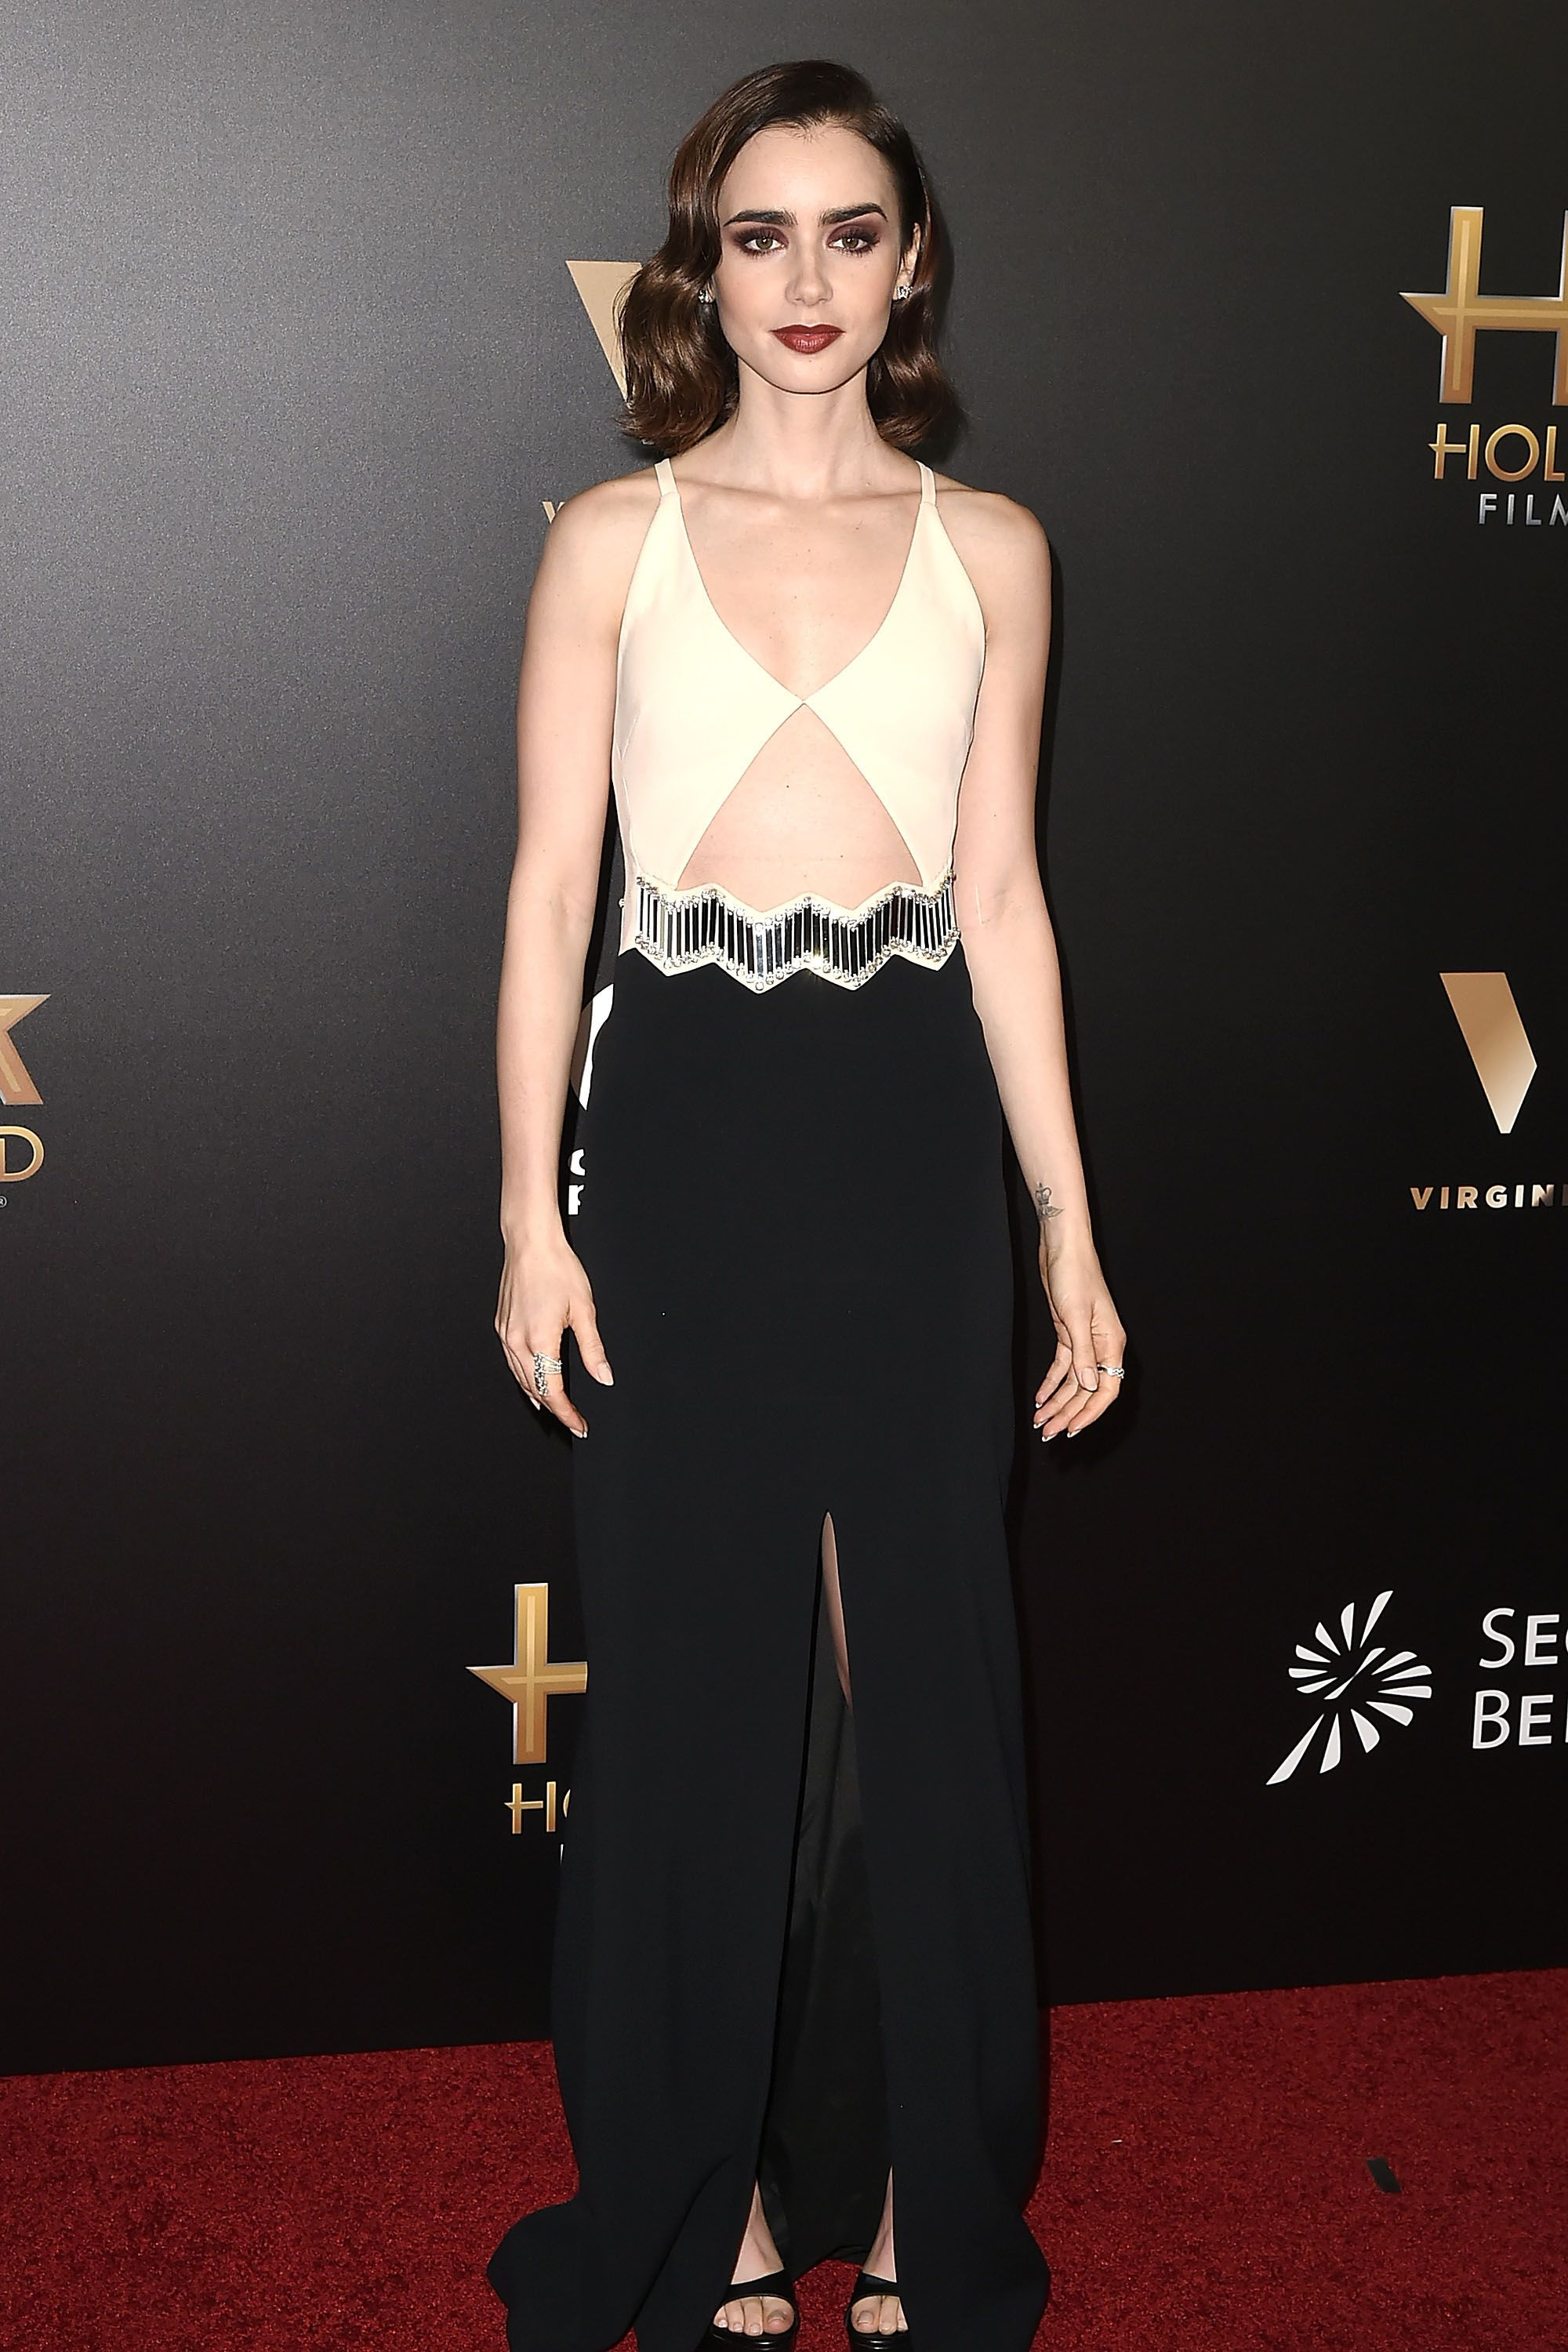 a6b5f9c0ef0c The Best Looks From 20th Annual Hollywood Film Awards